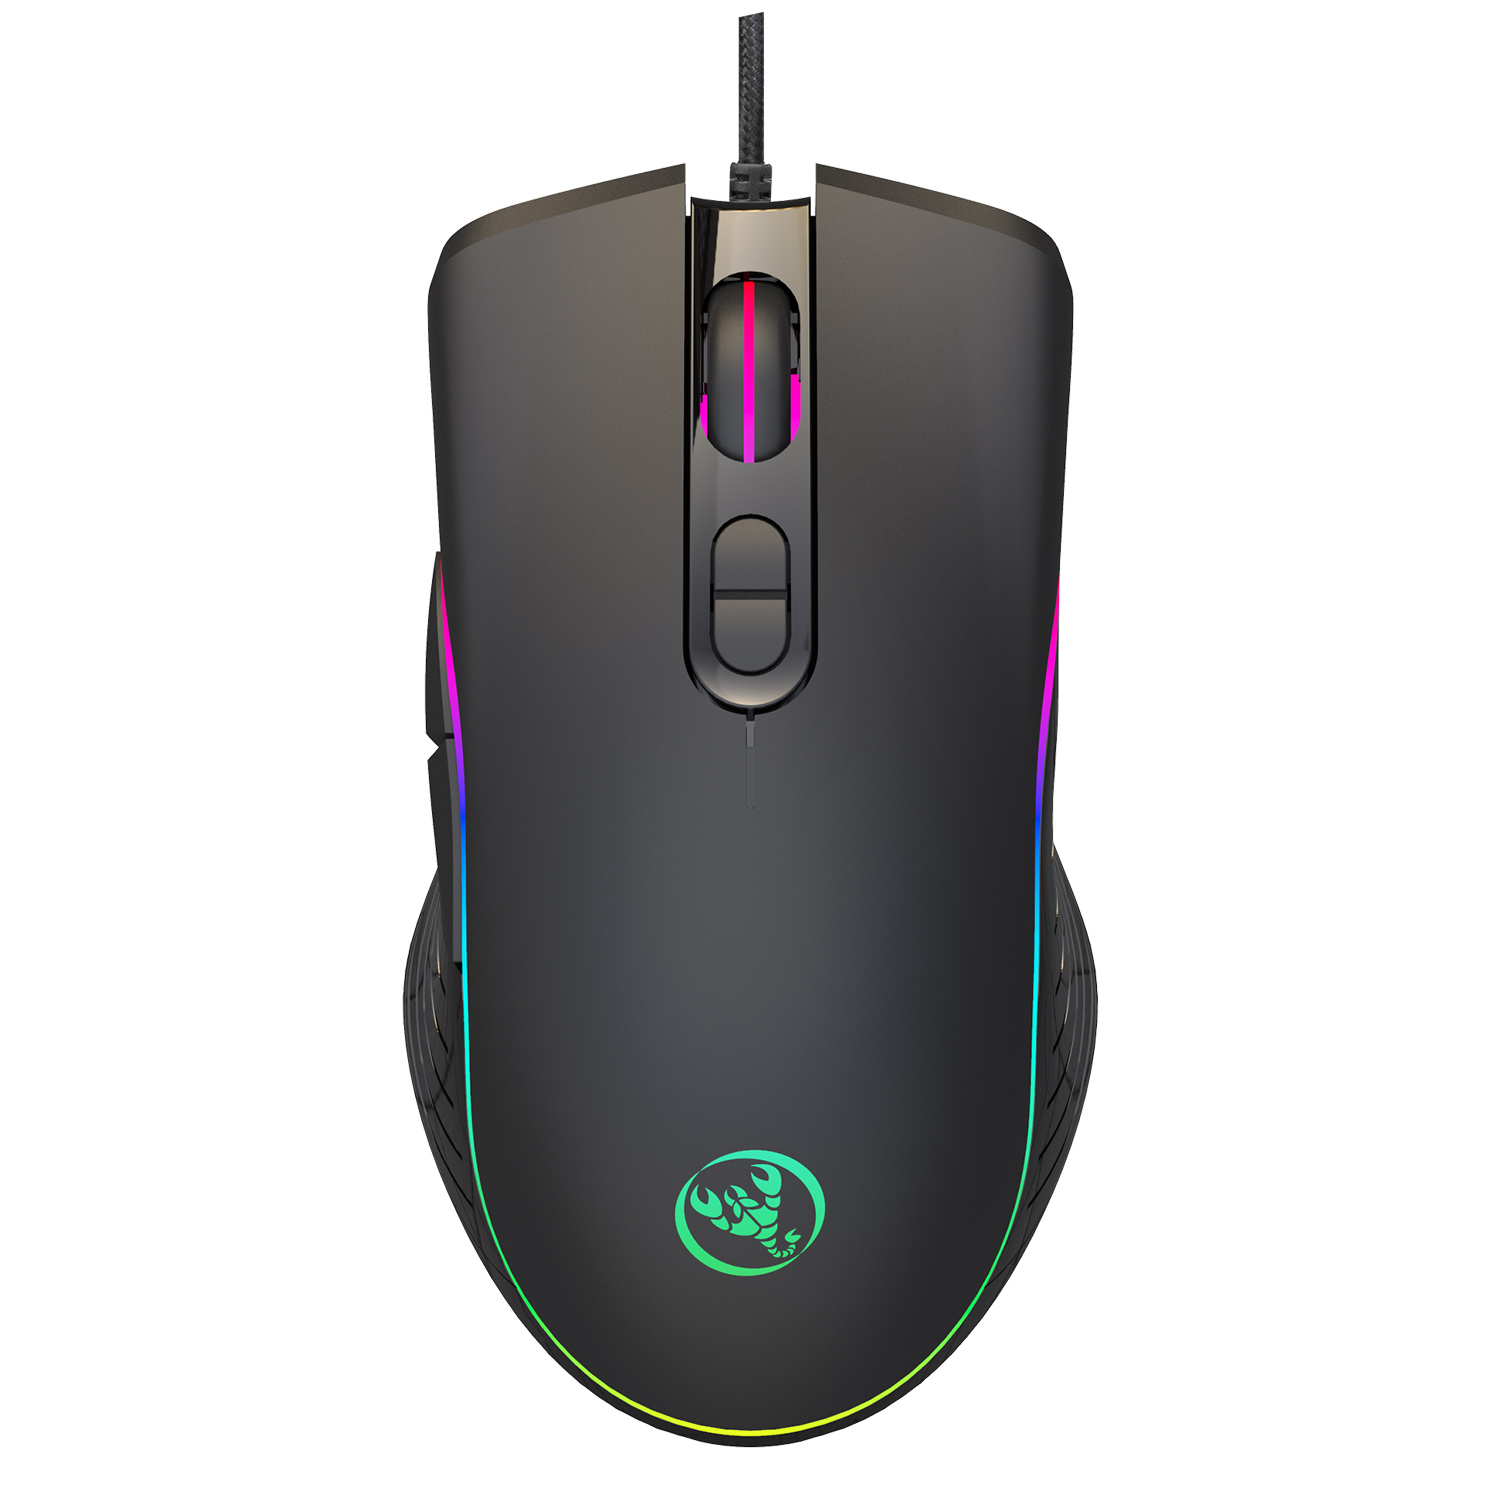 DASENLON STORE HXSJ Wired Gaming Mouse, Good Quality Mice Office Computer Mouse With RGB Backlit Adjustable DPI Max 6400